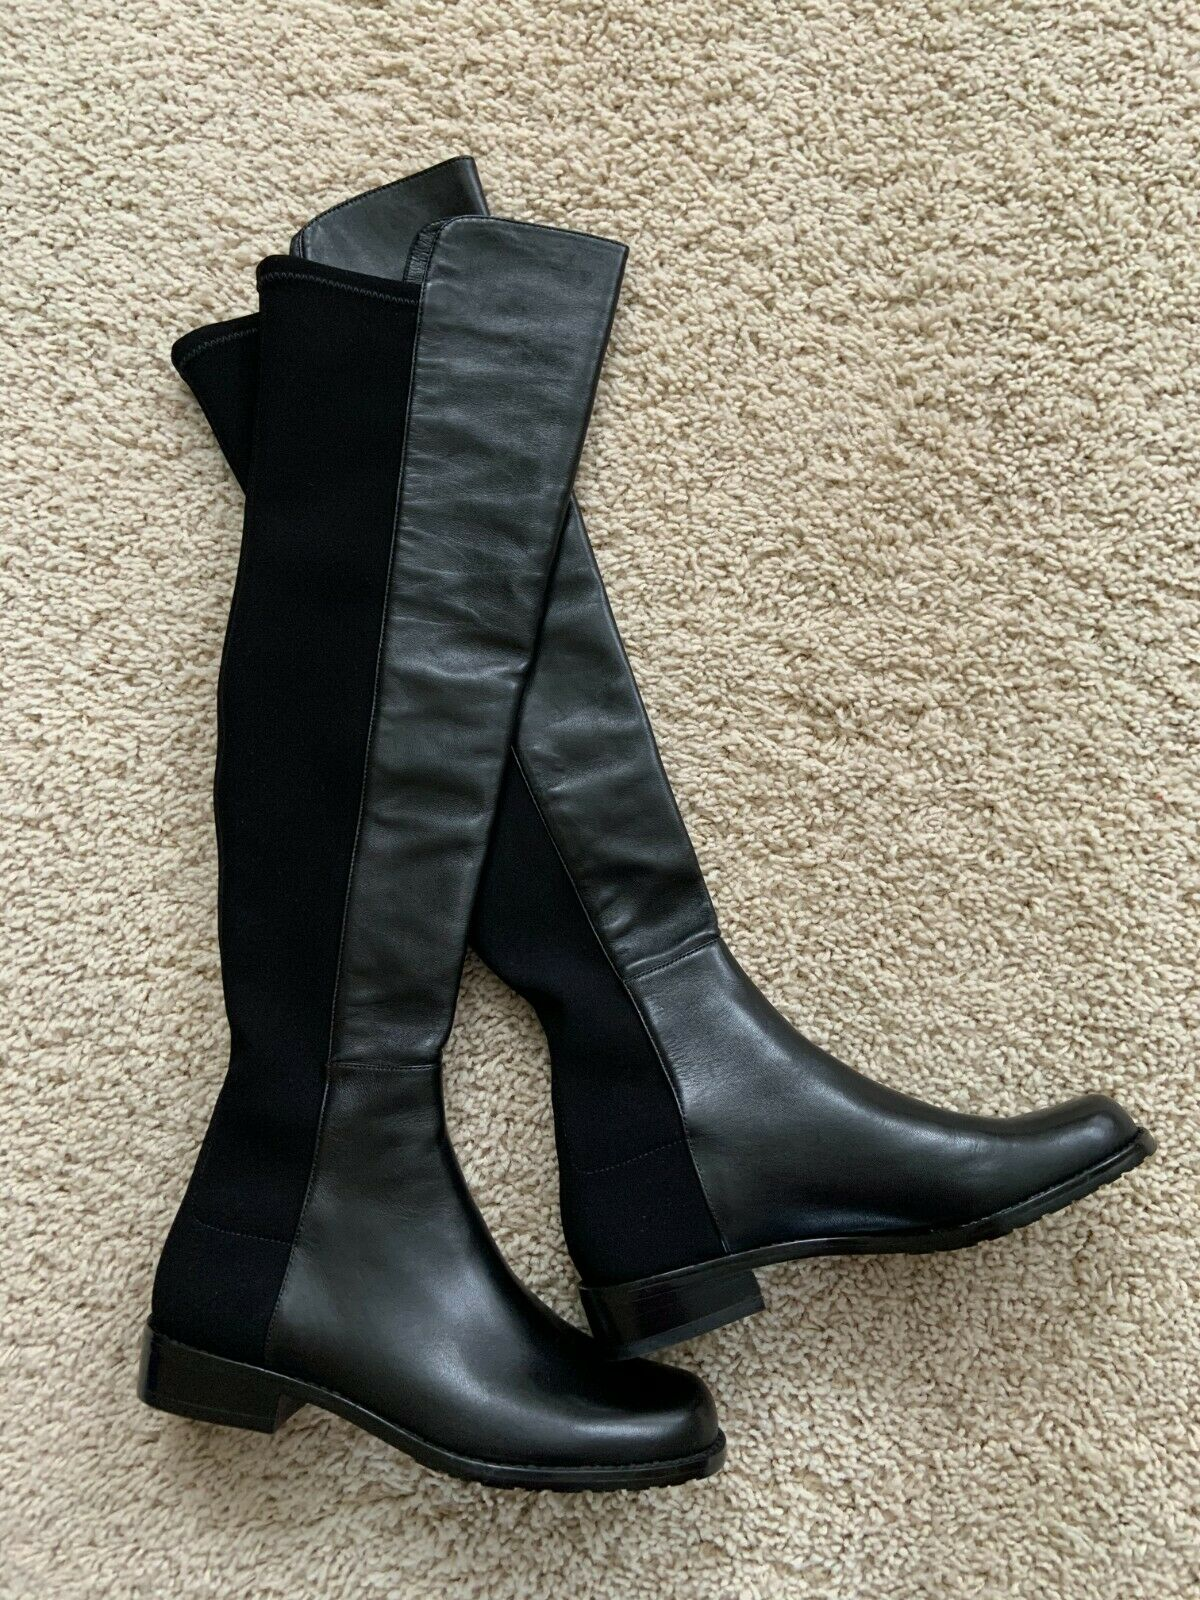 STUART WEITZMAN 5050 black nappa over the knee leather boots Size 4.5 NEW